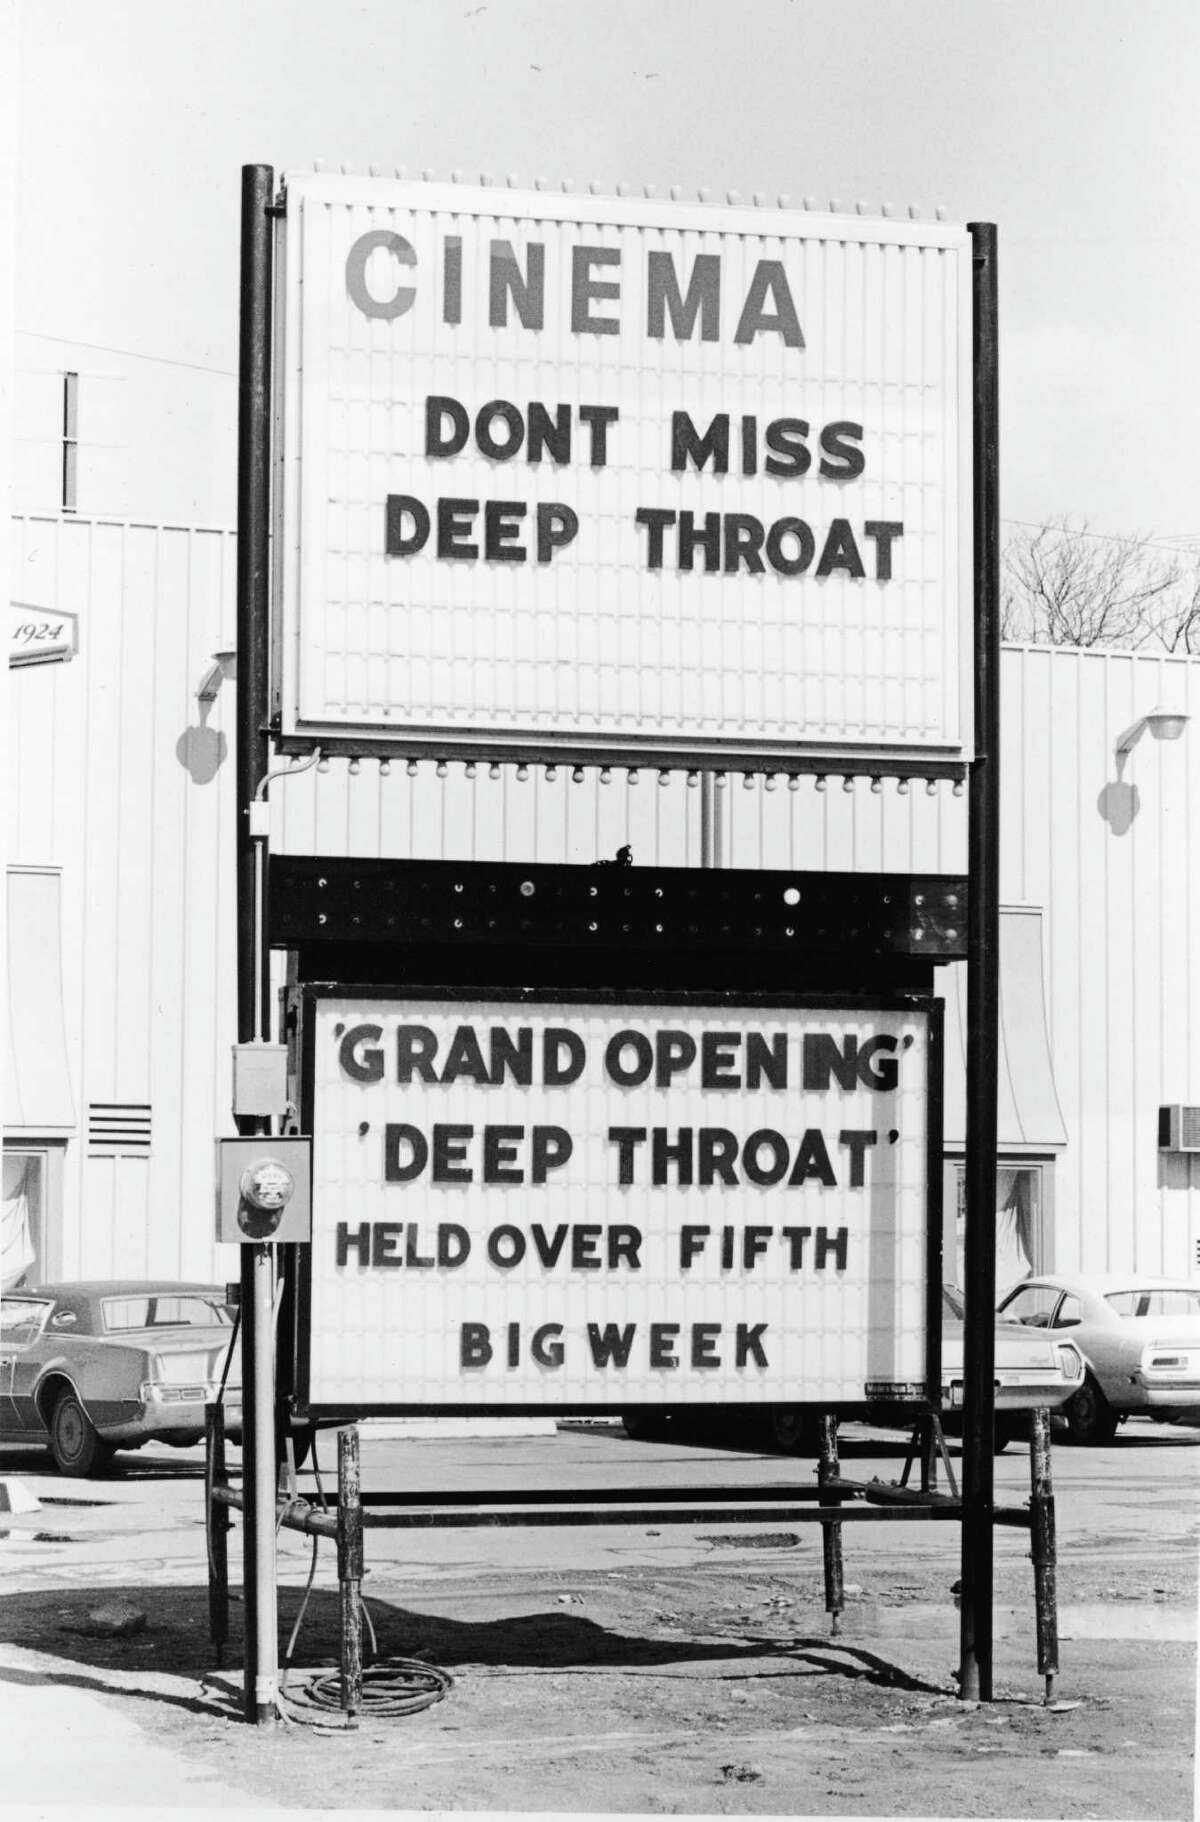 """The pornographic film """"Deep Throat,"""" starring Linda Lovelace made headlines around the world due to its racy content in the early 1970s. The film, directed by Gerard Damiano, was described as """"porn chic"""" and was the first feature-length sex film with a plot."""